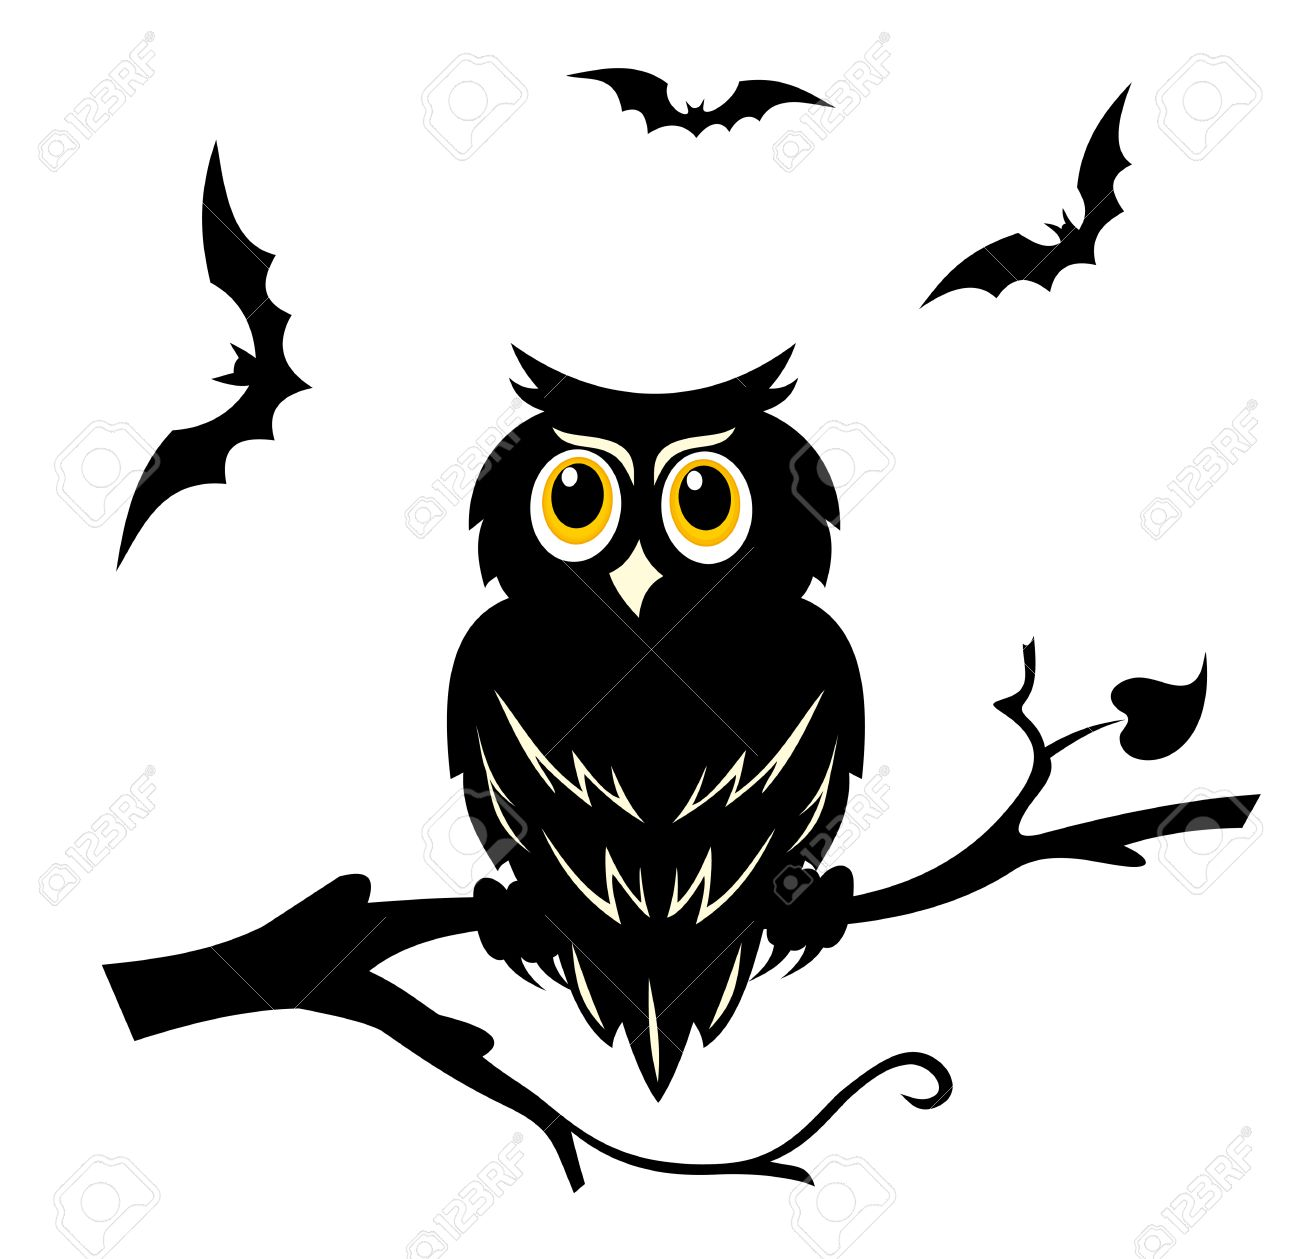 Black Halloween Owl On The Branch Of Tree Royalty Free Cliparts ...